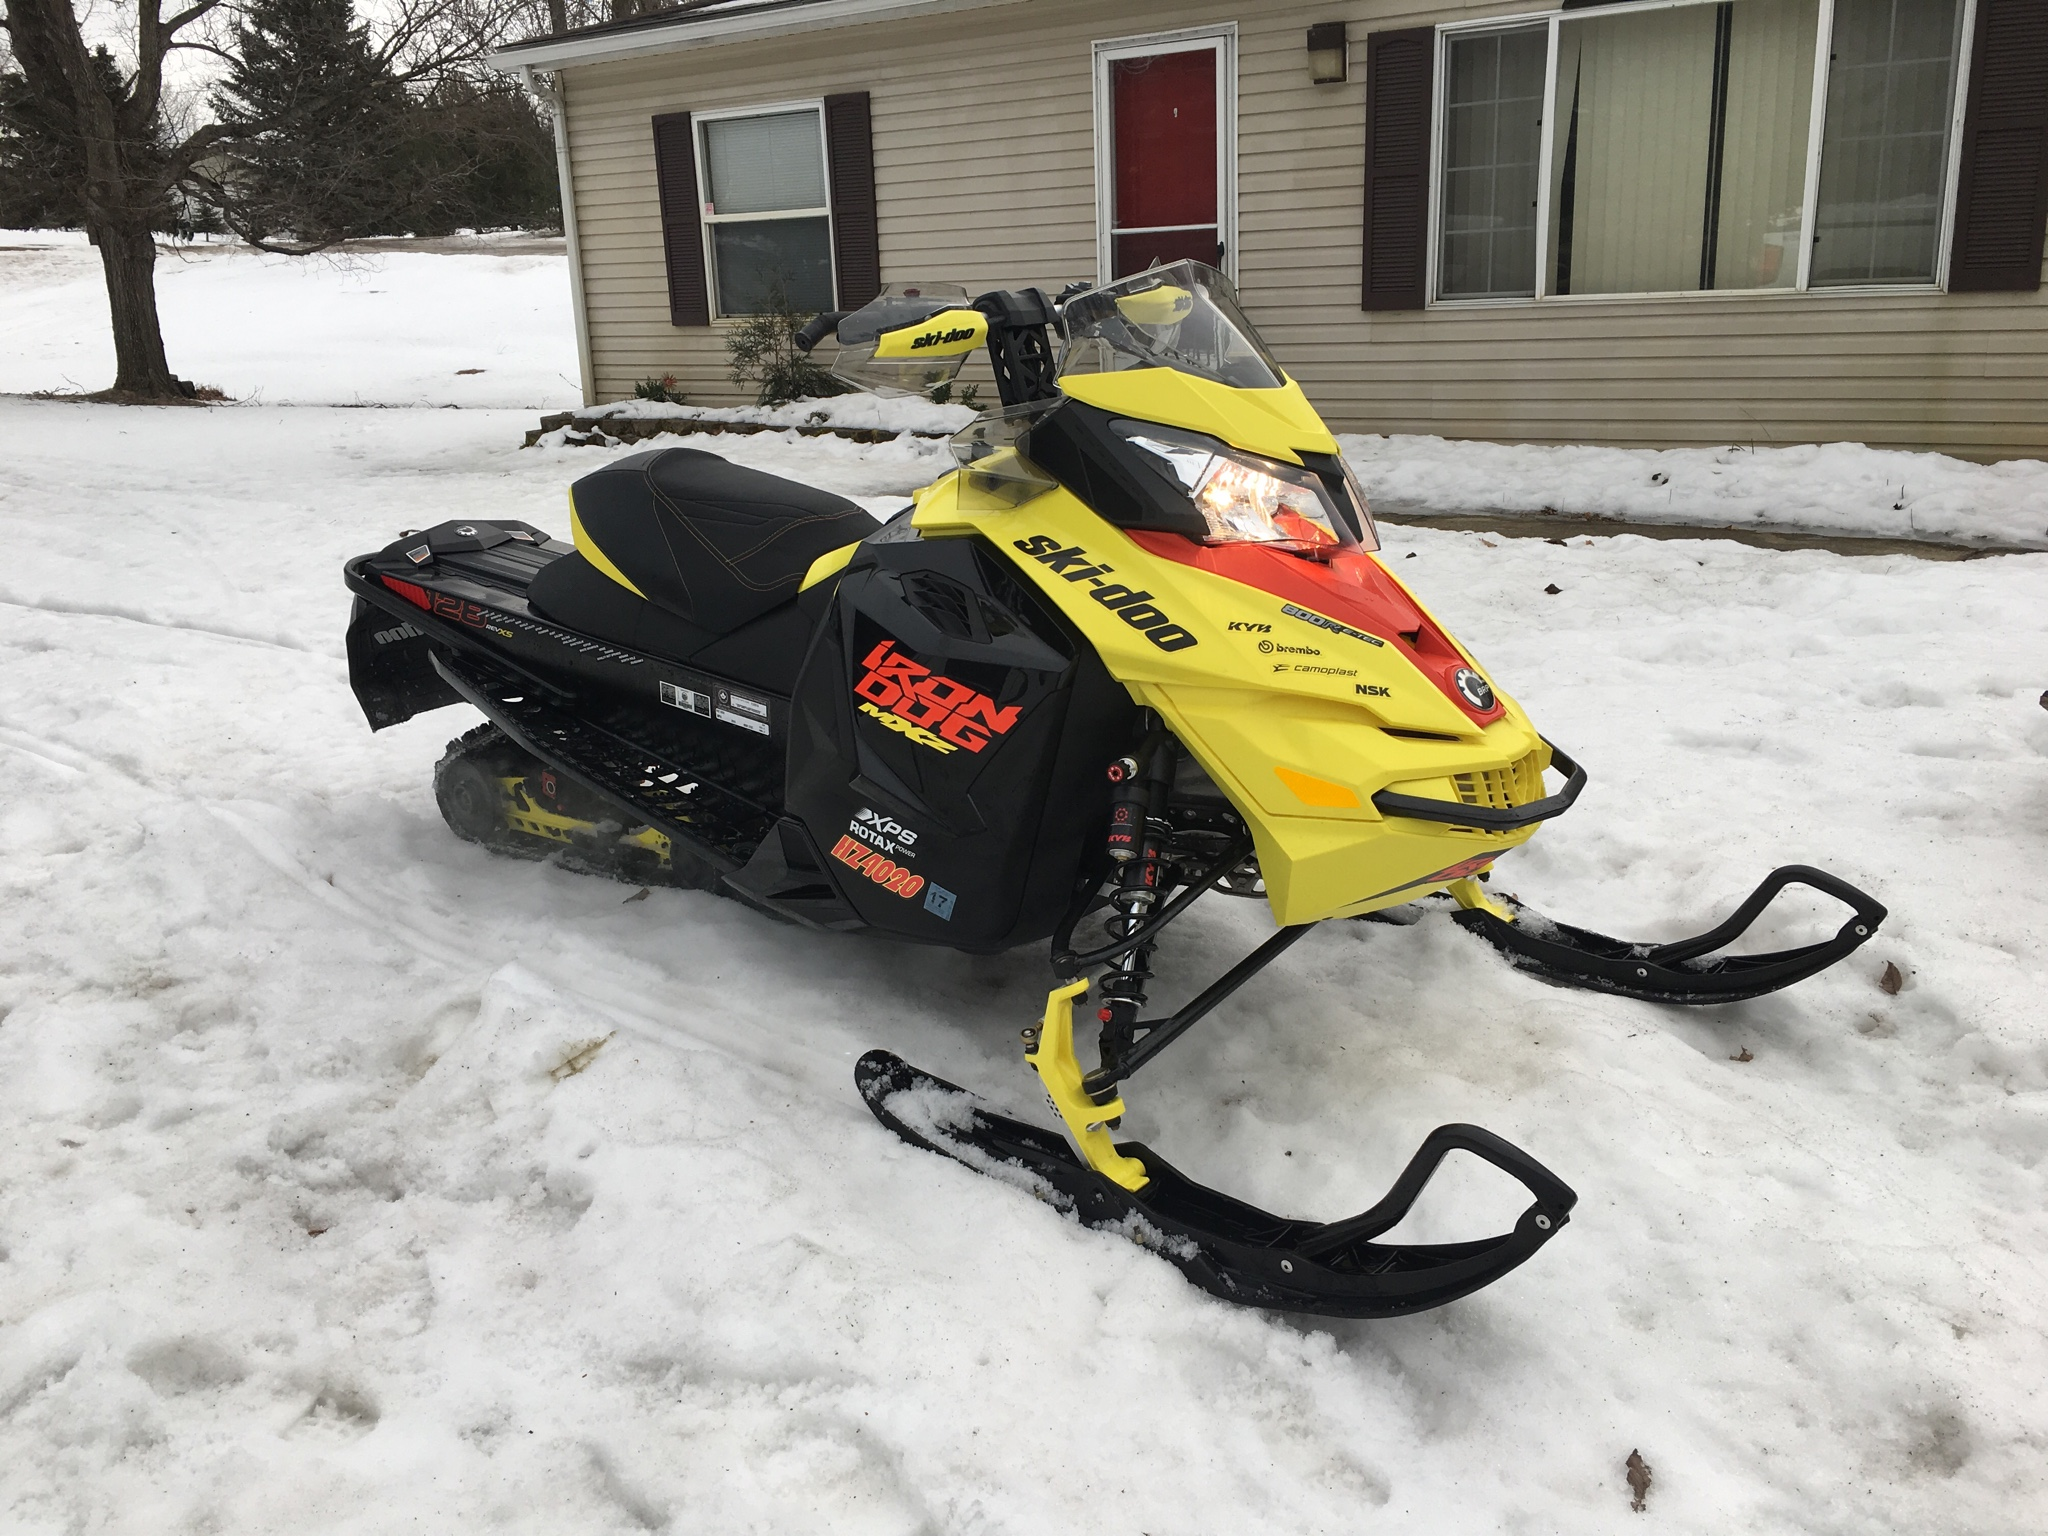 20155 xrs iron dog 800 etec sleds for sale dootalk forums